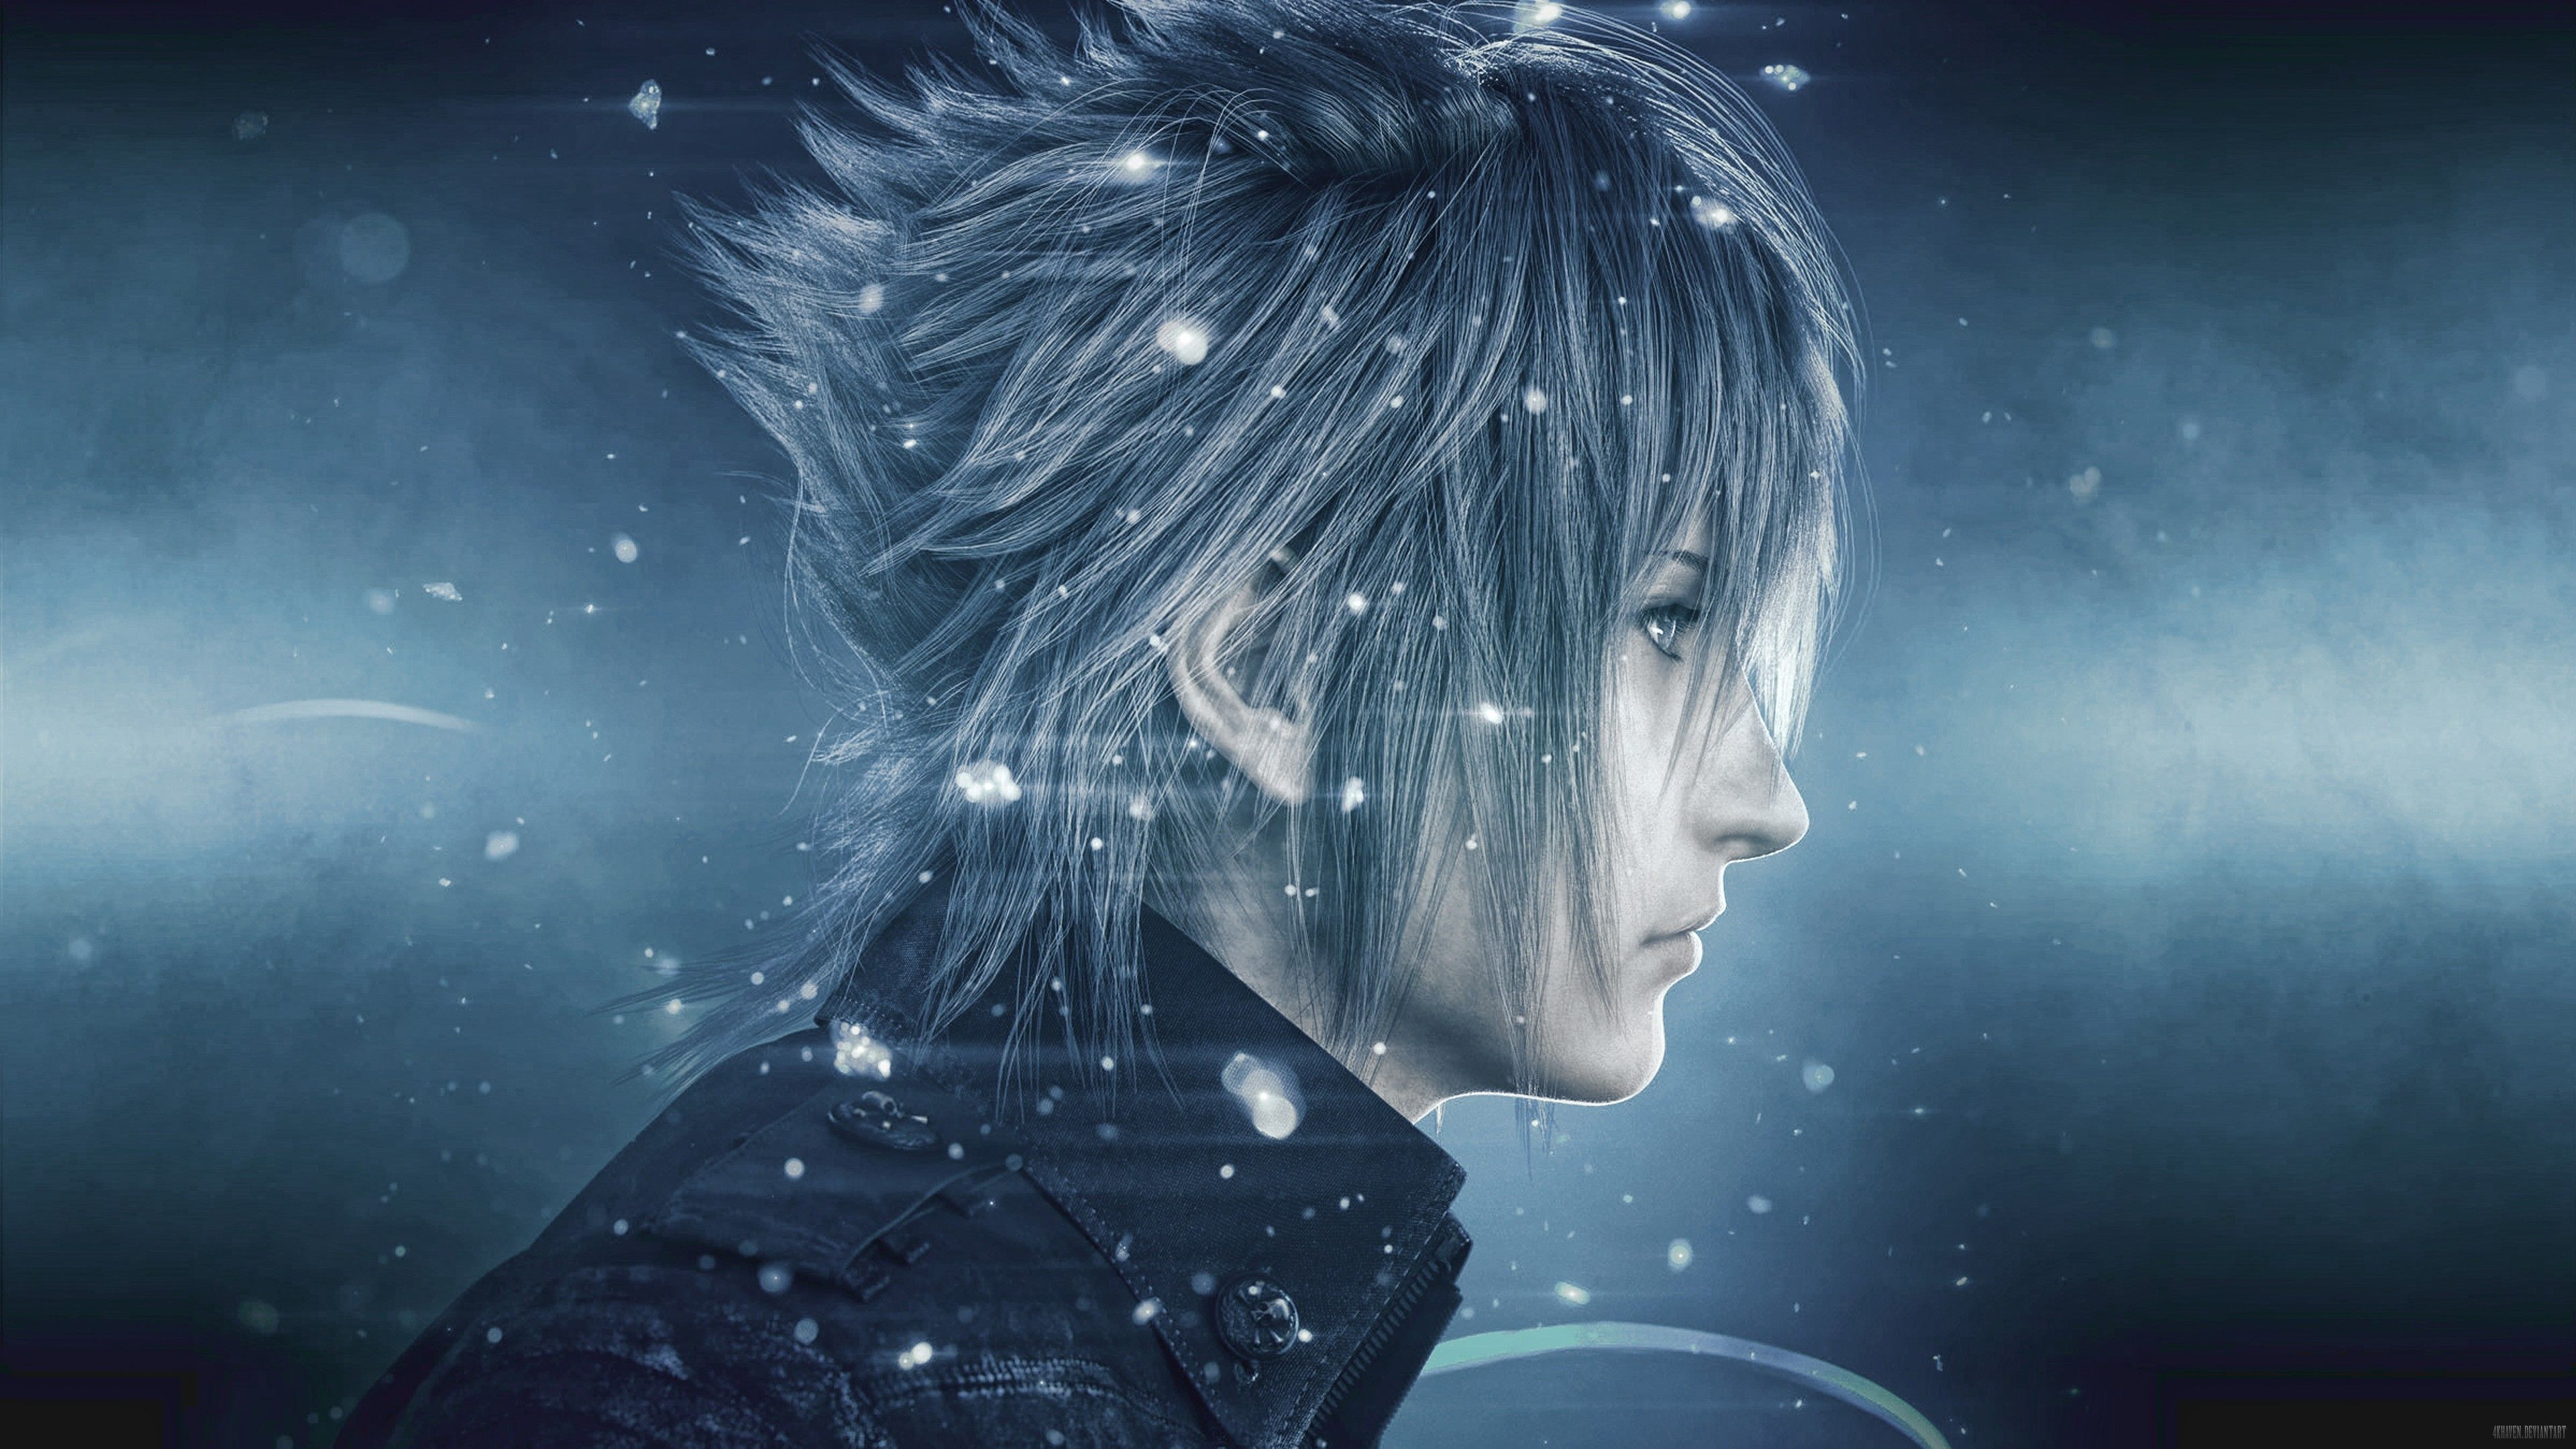 Final Fantasy Xv Noctis Hd Games 4k Wallpapers Images